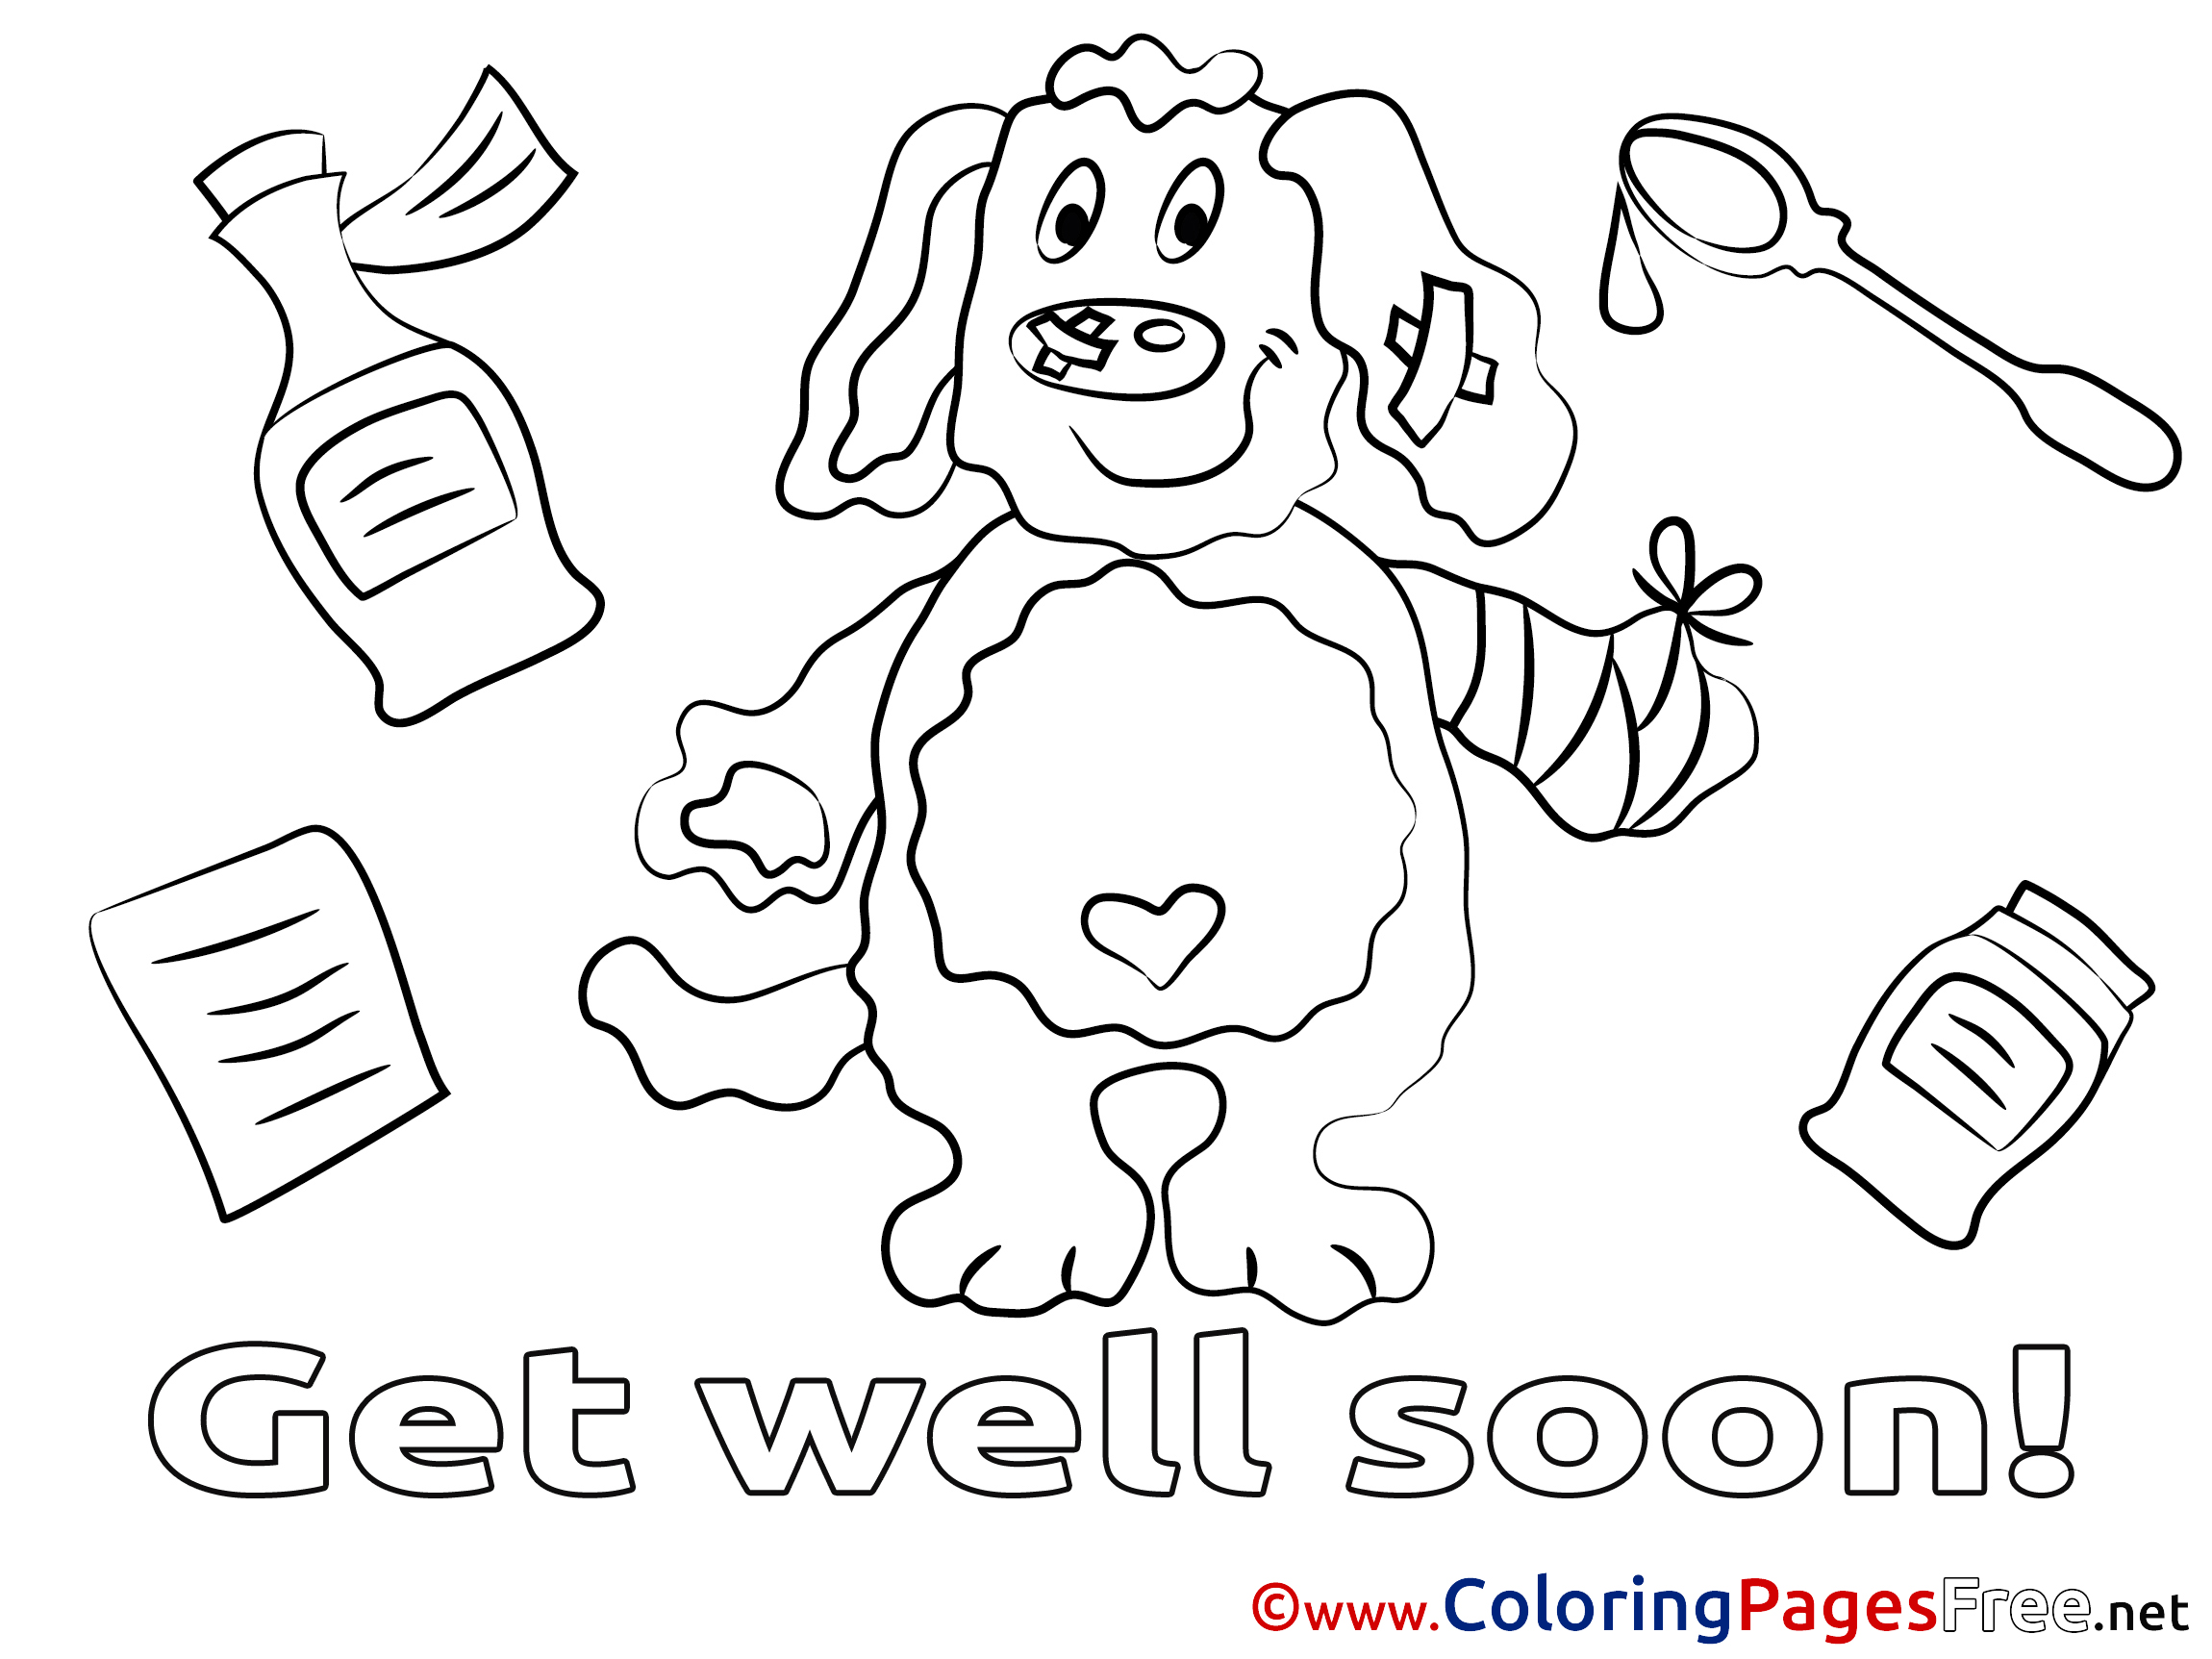 Puppy coloring sheets get well soon free for Get well soon card coloring pages